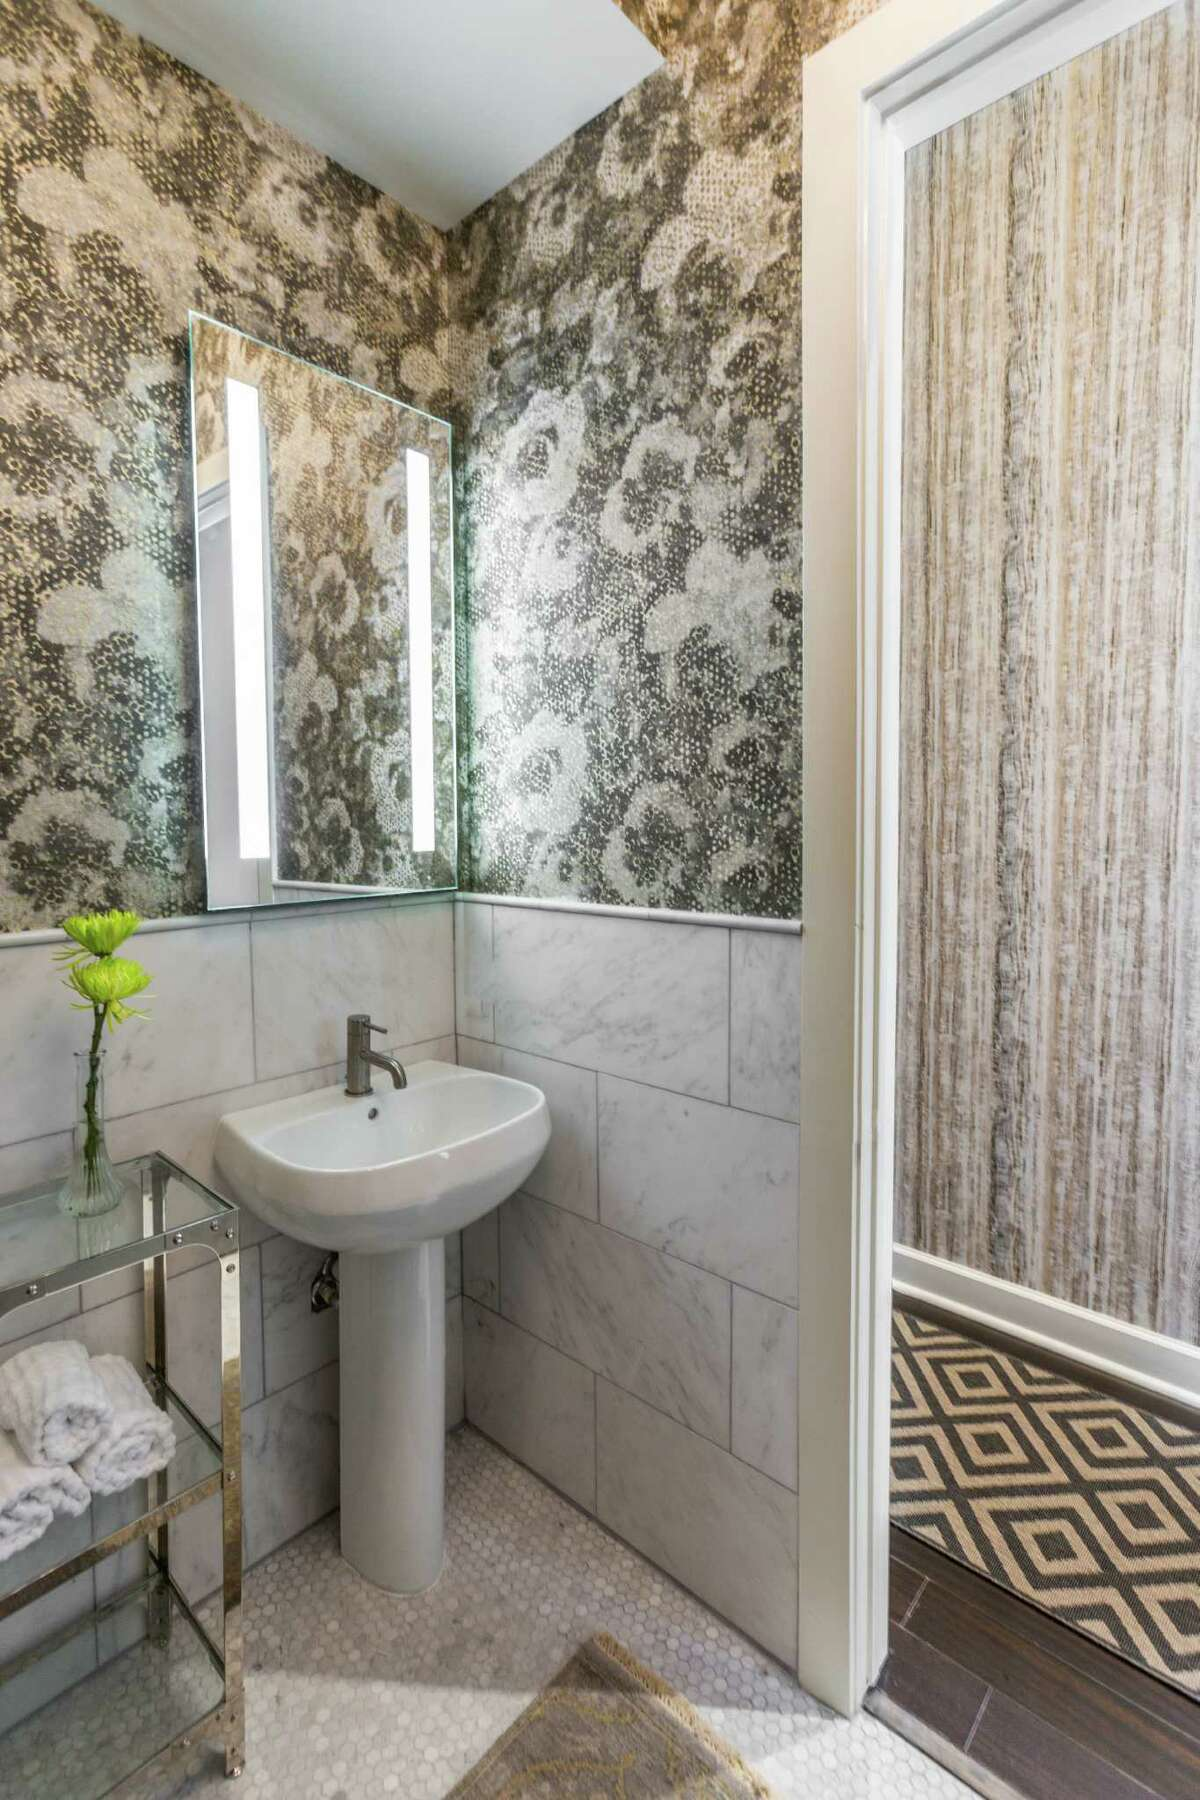 Designer Laura Umansky used a metallic floral-print wallpaper for this powder room in a Heights mid-rise. The metallic tones fit the industrial feel of the condo, but the floral print softens the look.